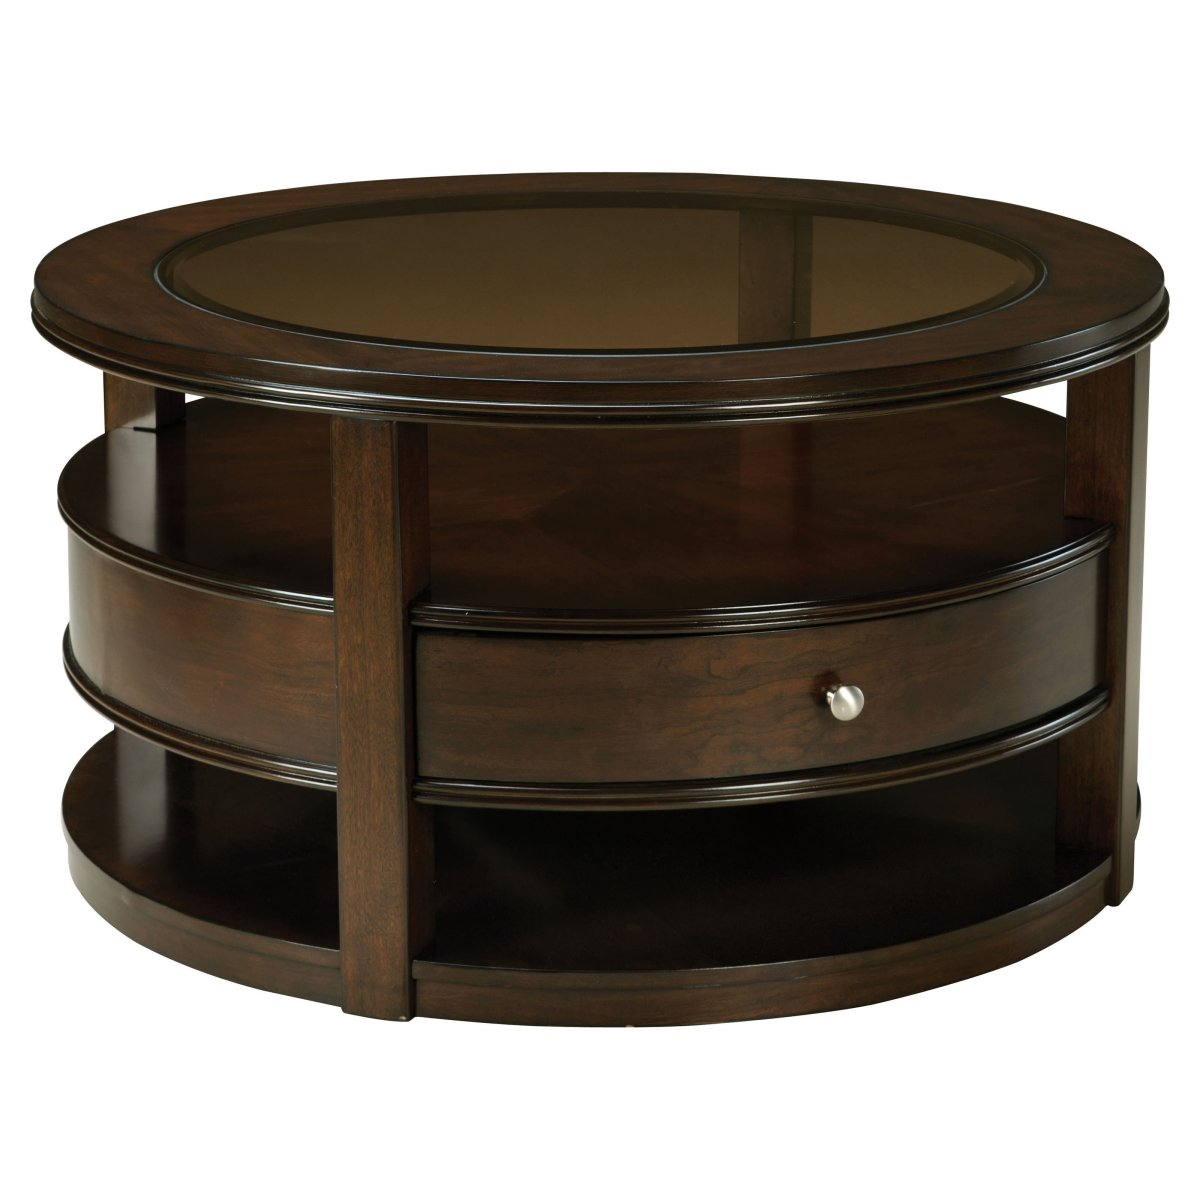 Dark Wooden Round Coffee Tables With Storage Drawers. Round Coffee Tables with Storage   HomesFeed